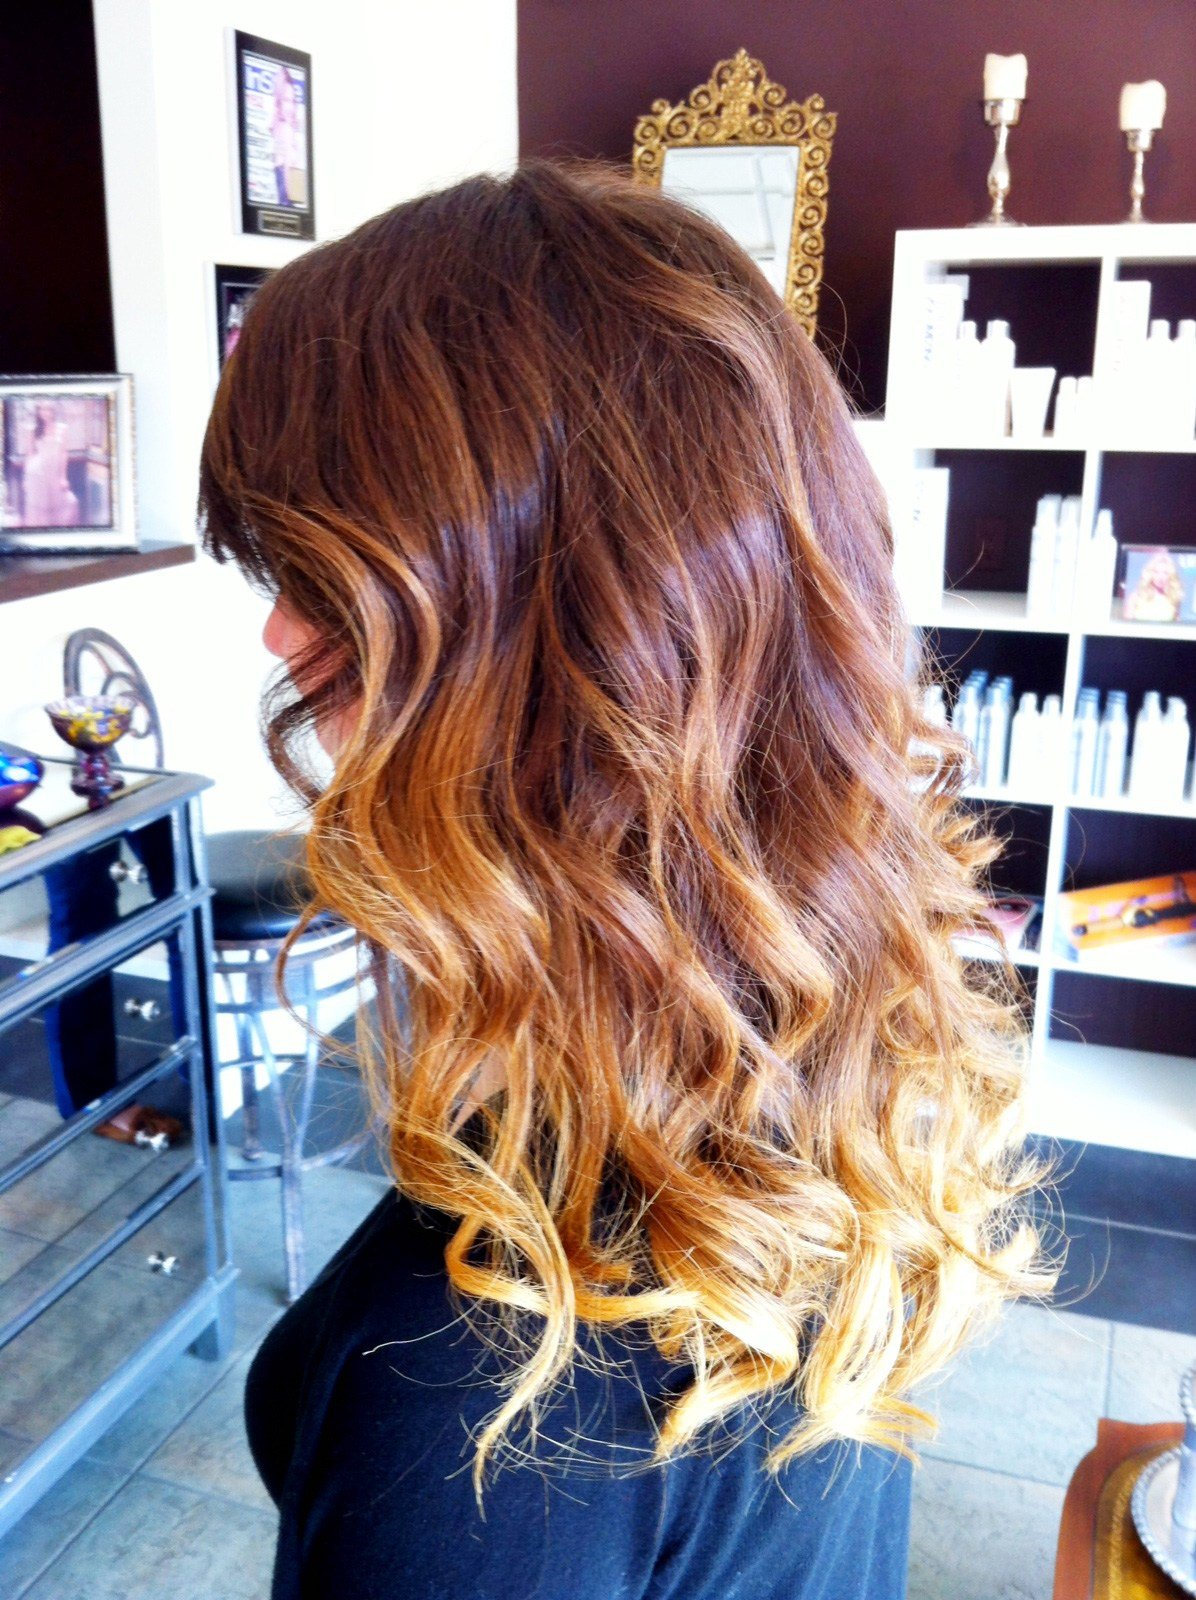 The Best Karu Salon Hair Salon Austin Tx Ombre Hair Color Pictures